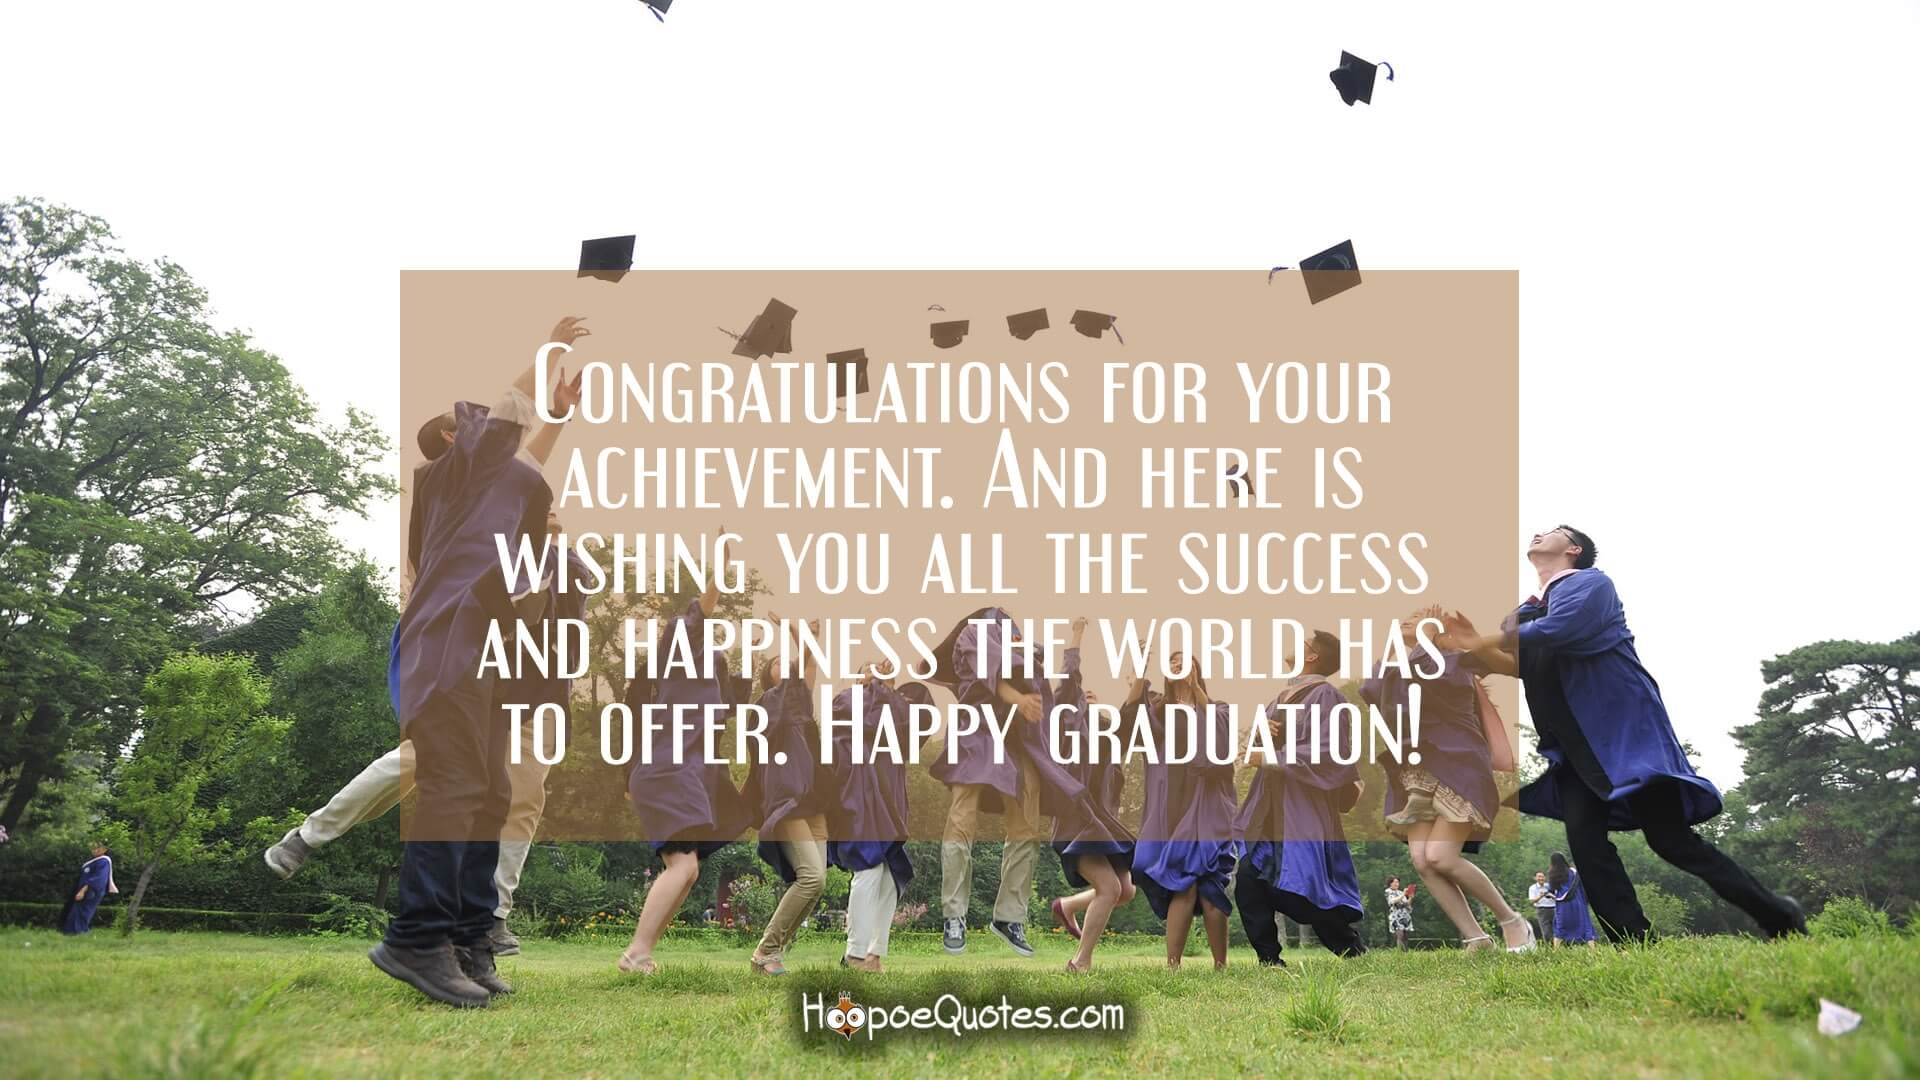 Graduation Wishes Quotes Messages